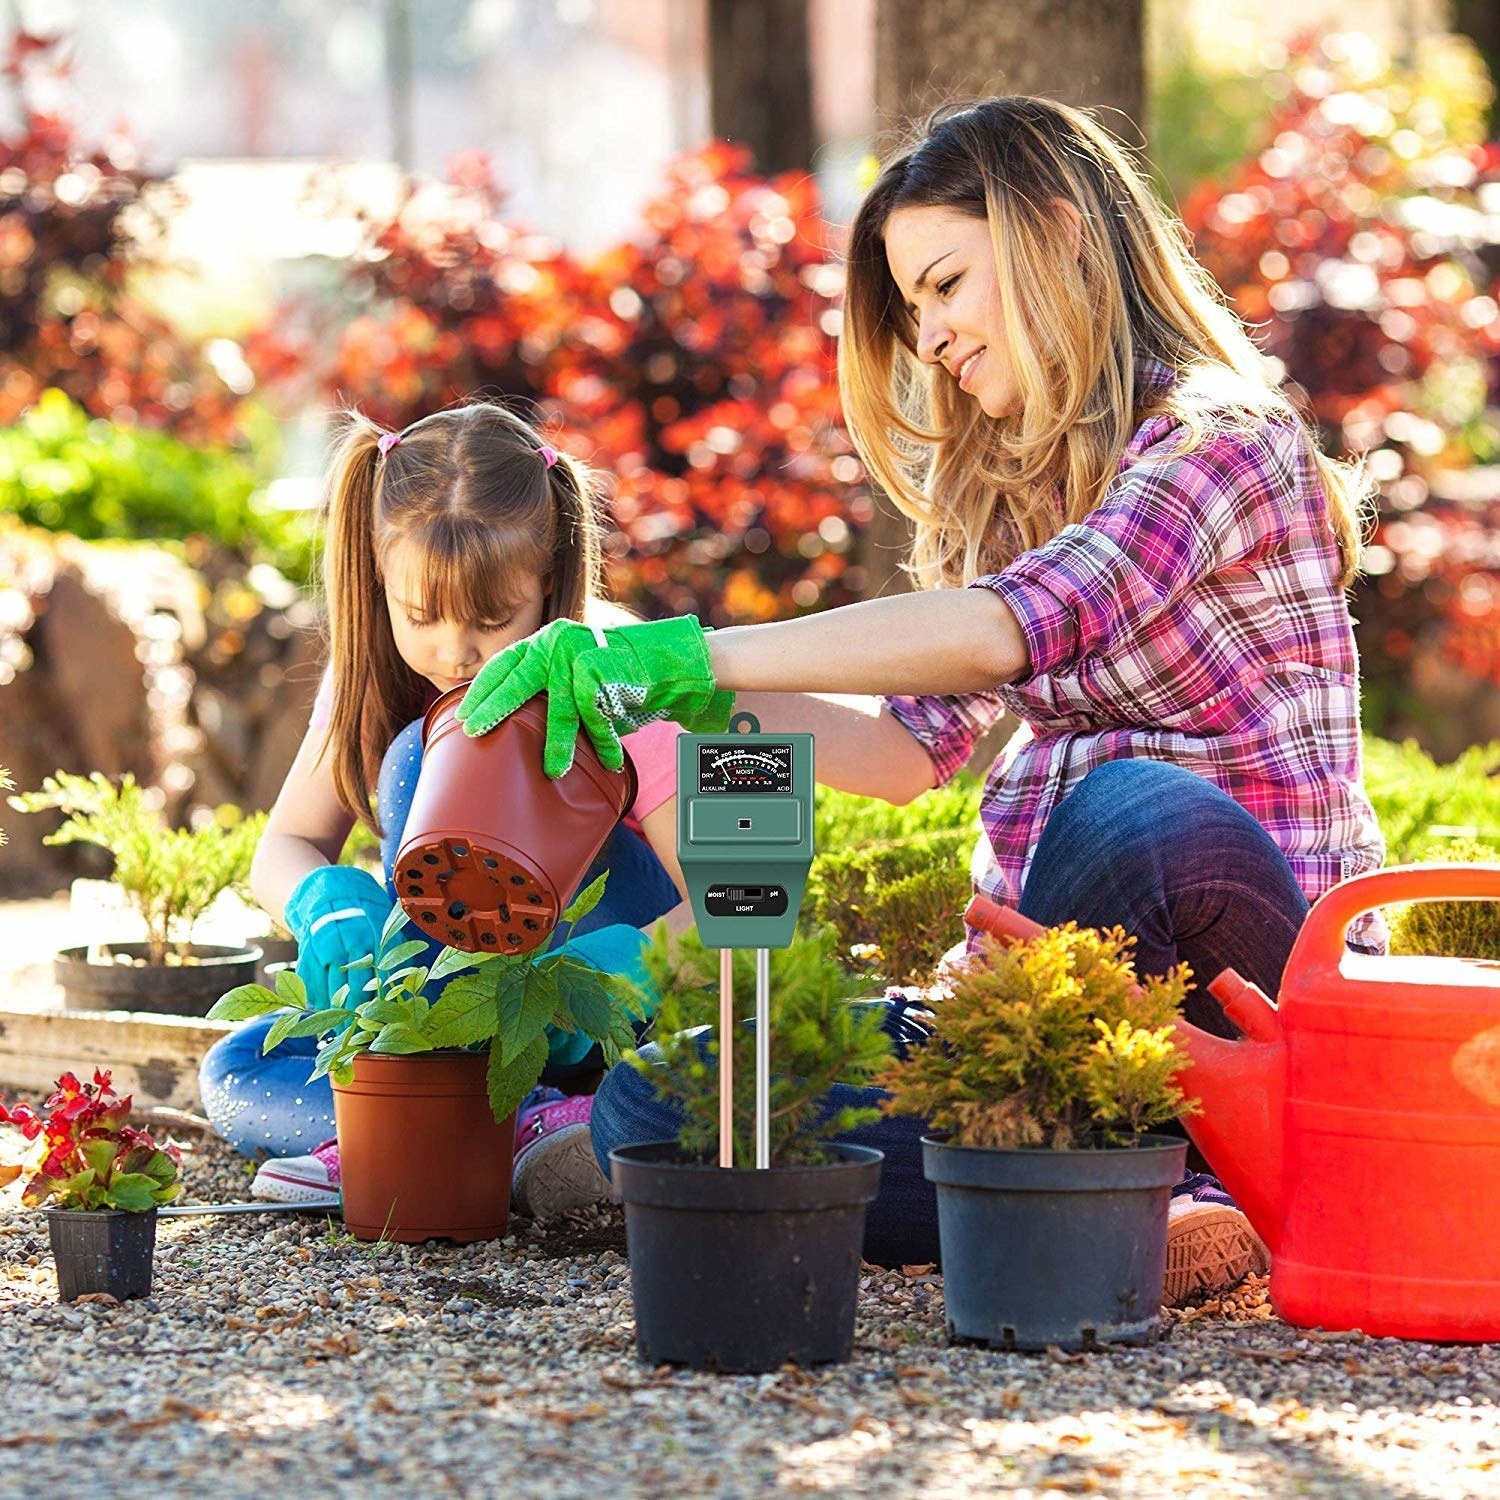 A women with a child who are planting pots and testing the soil with a sensor.